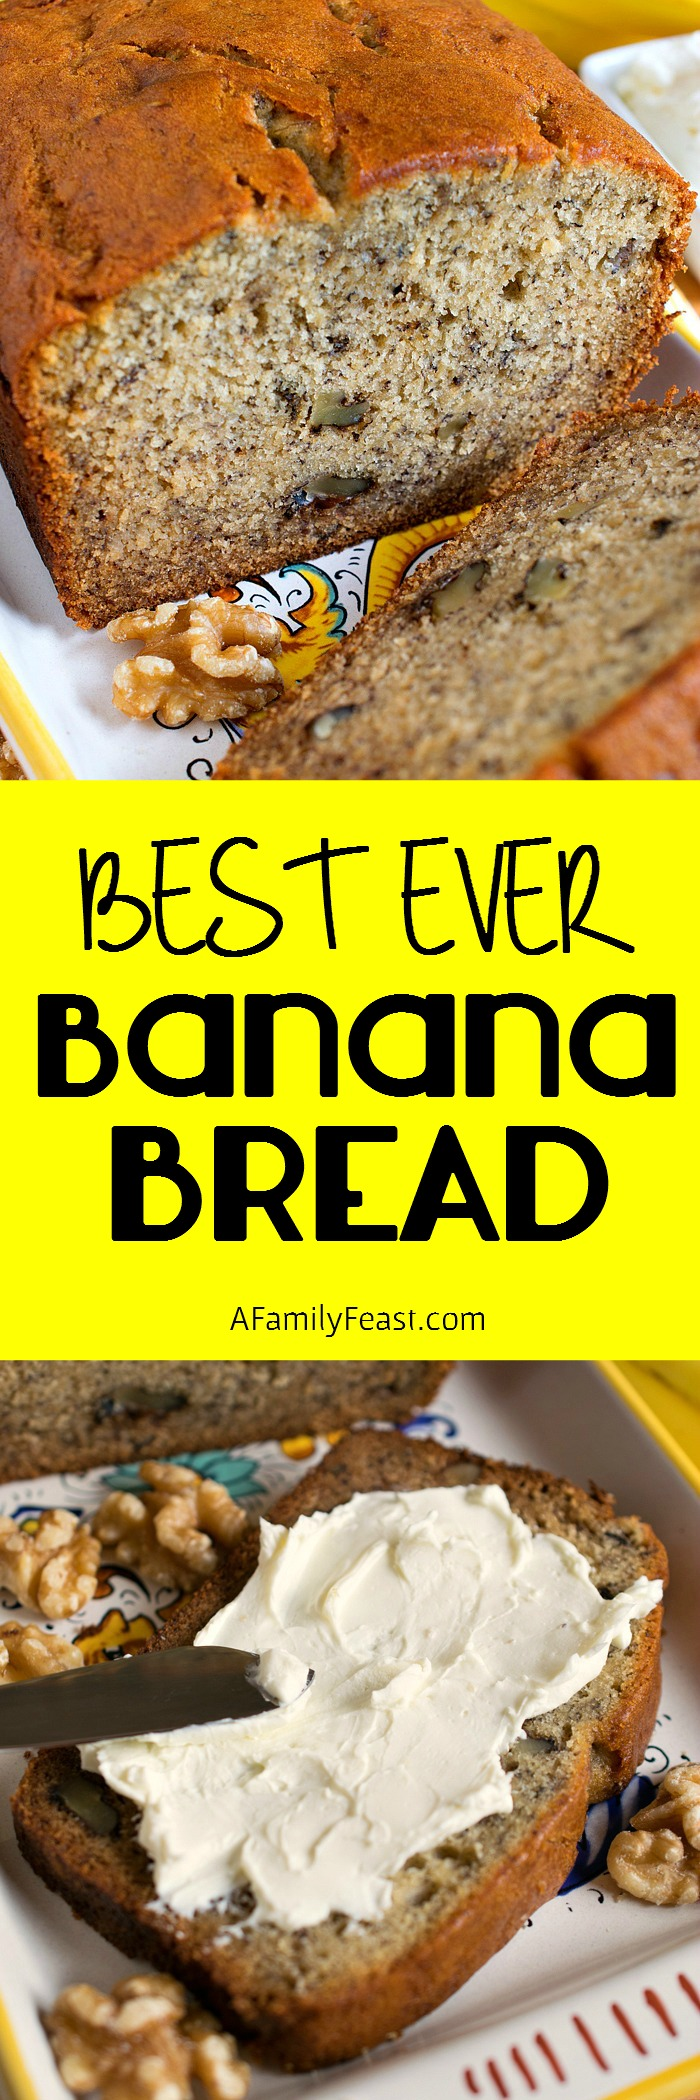 Best Ever Banana Bread - This really is the best ever! Moist, dense and full of banana flavor!